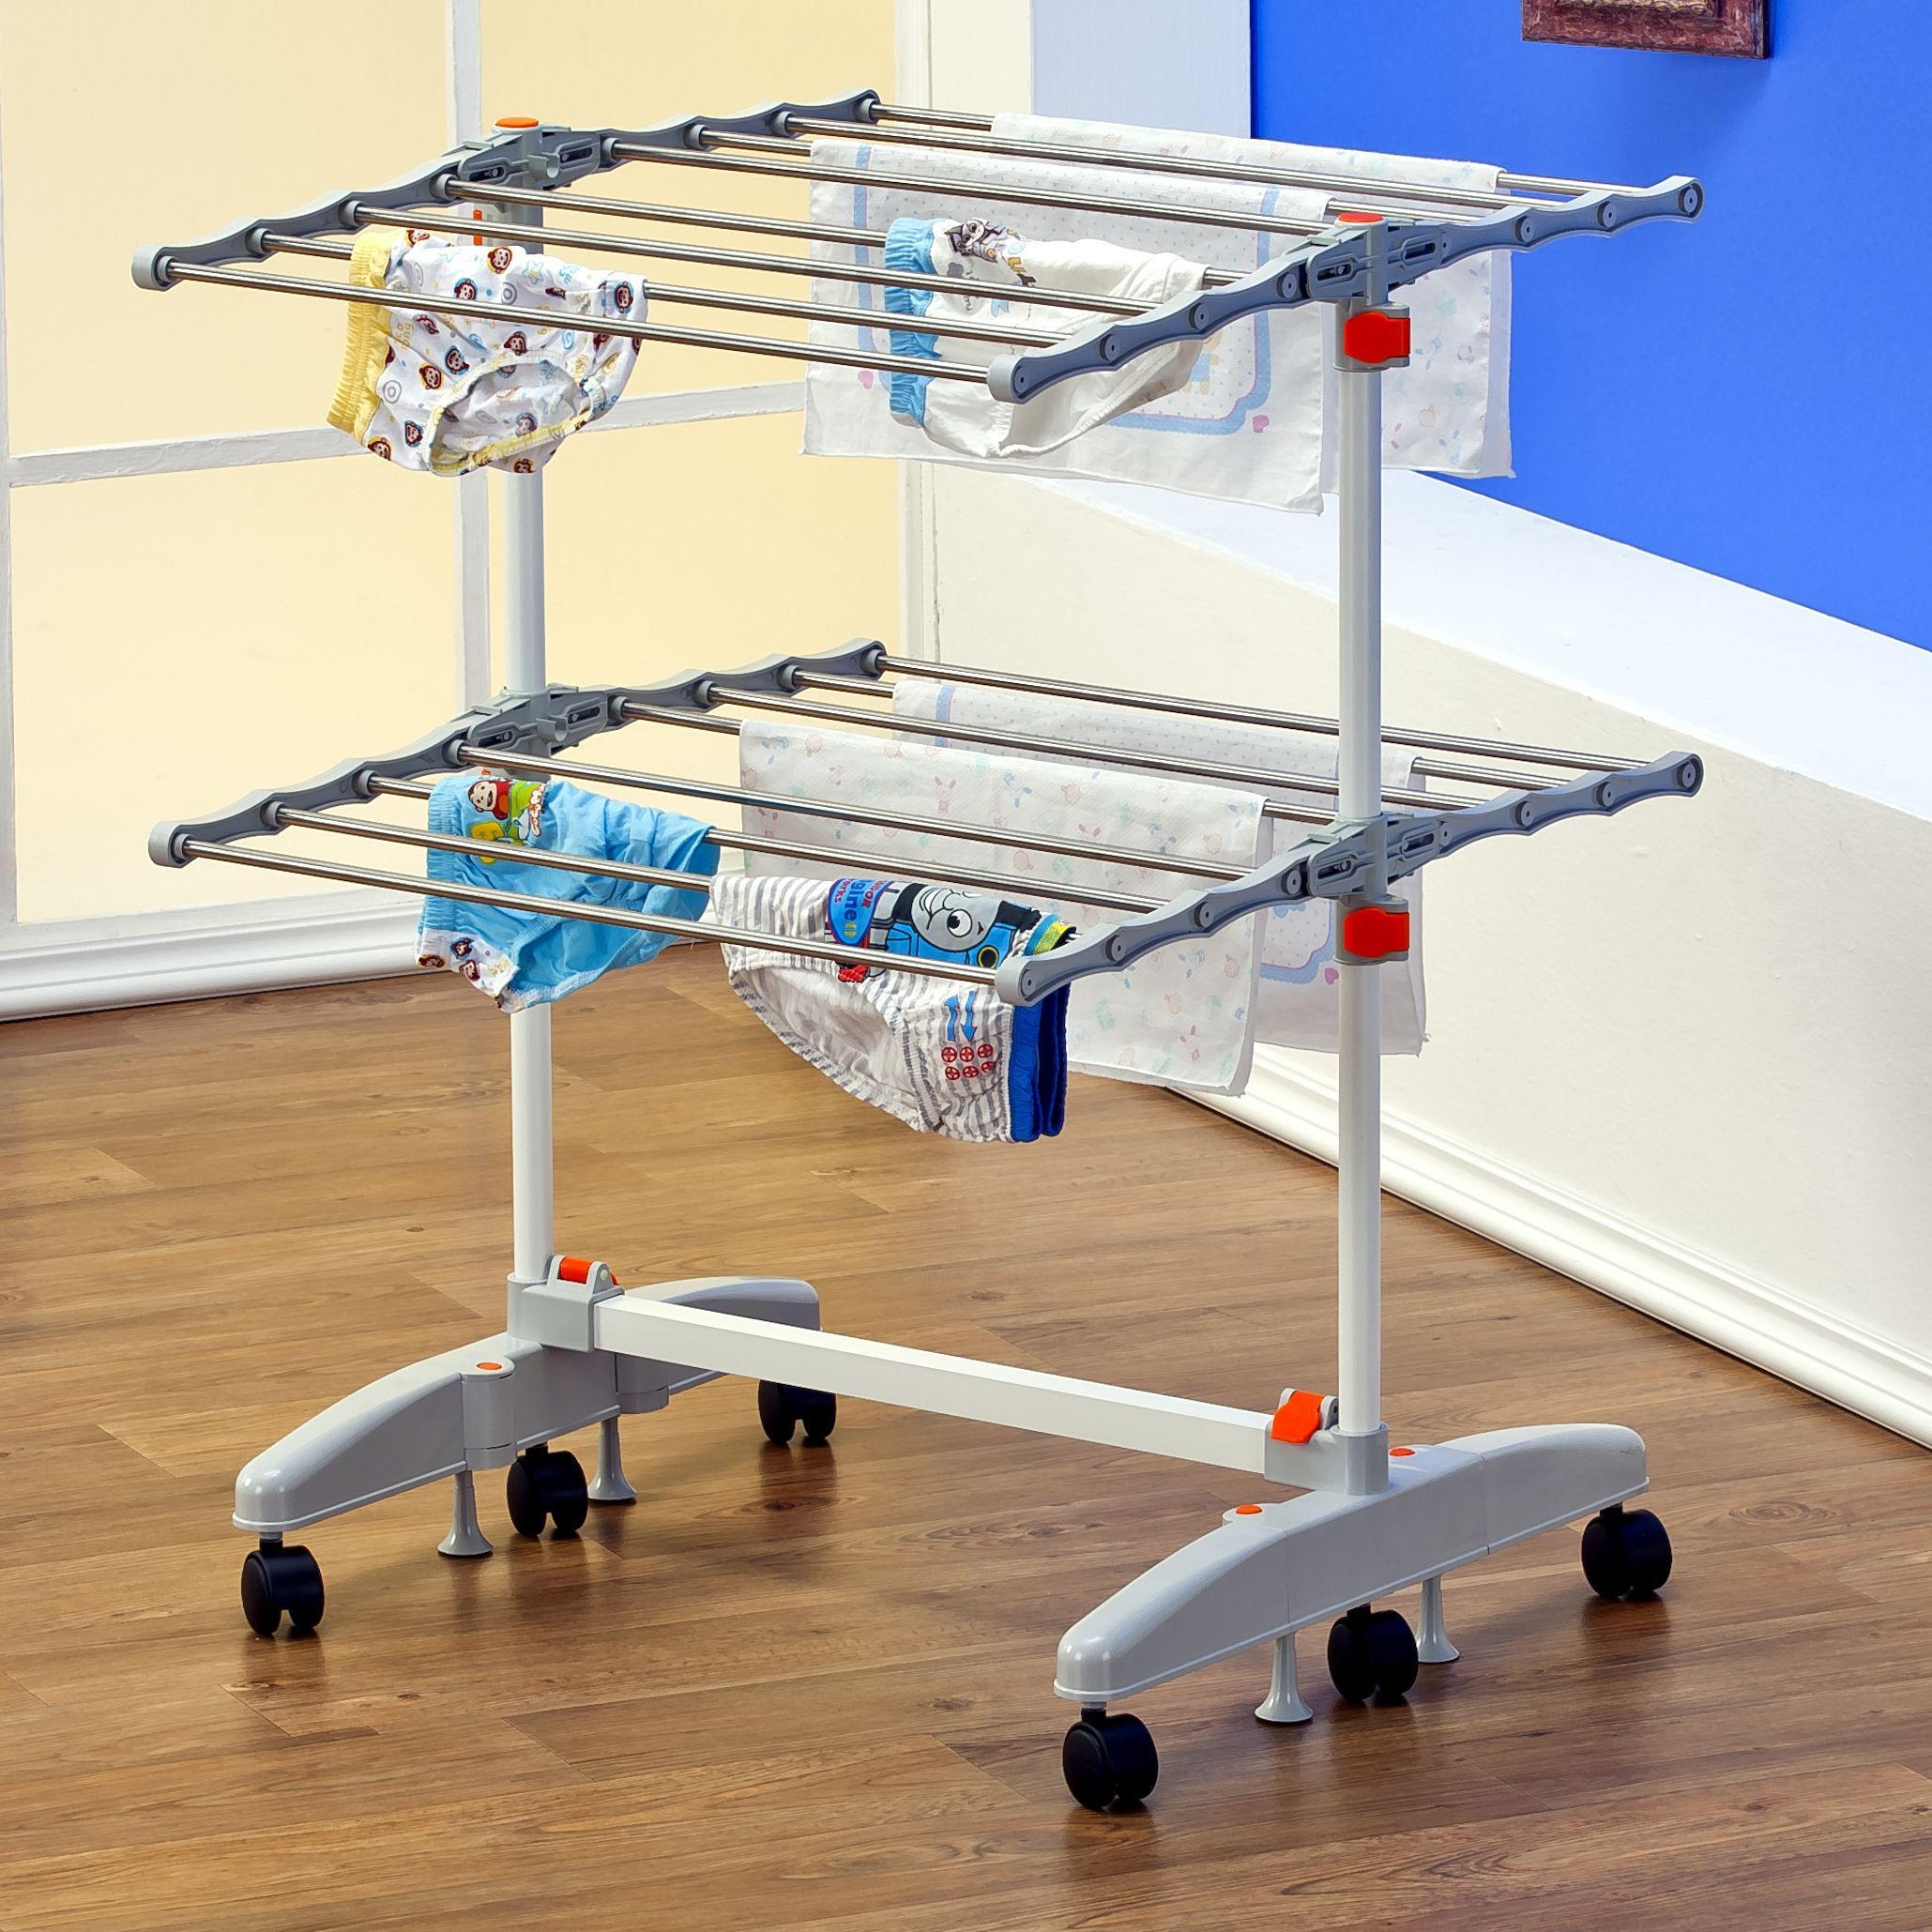 Portable And Compact, This Foldable Laundry Drying Rack From Badoogi Is Not  Only Great For